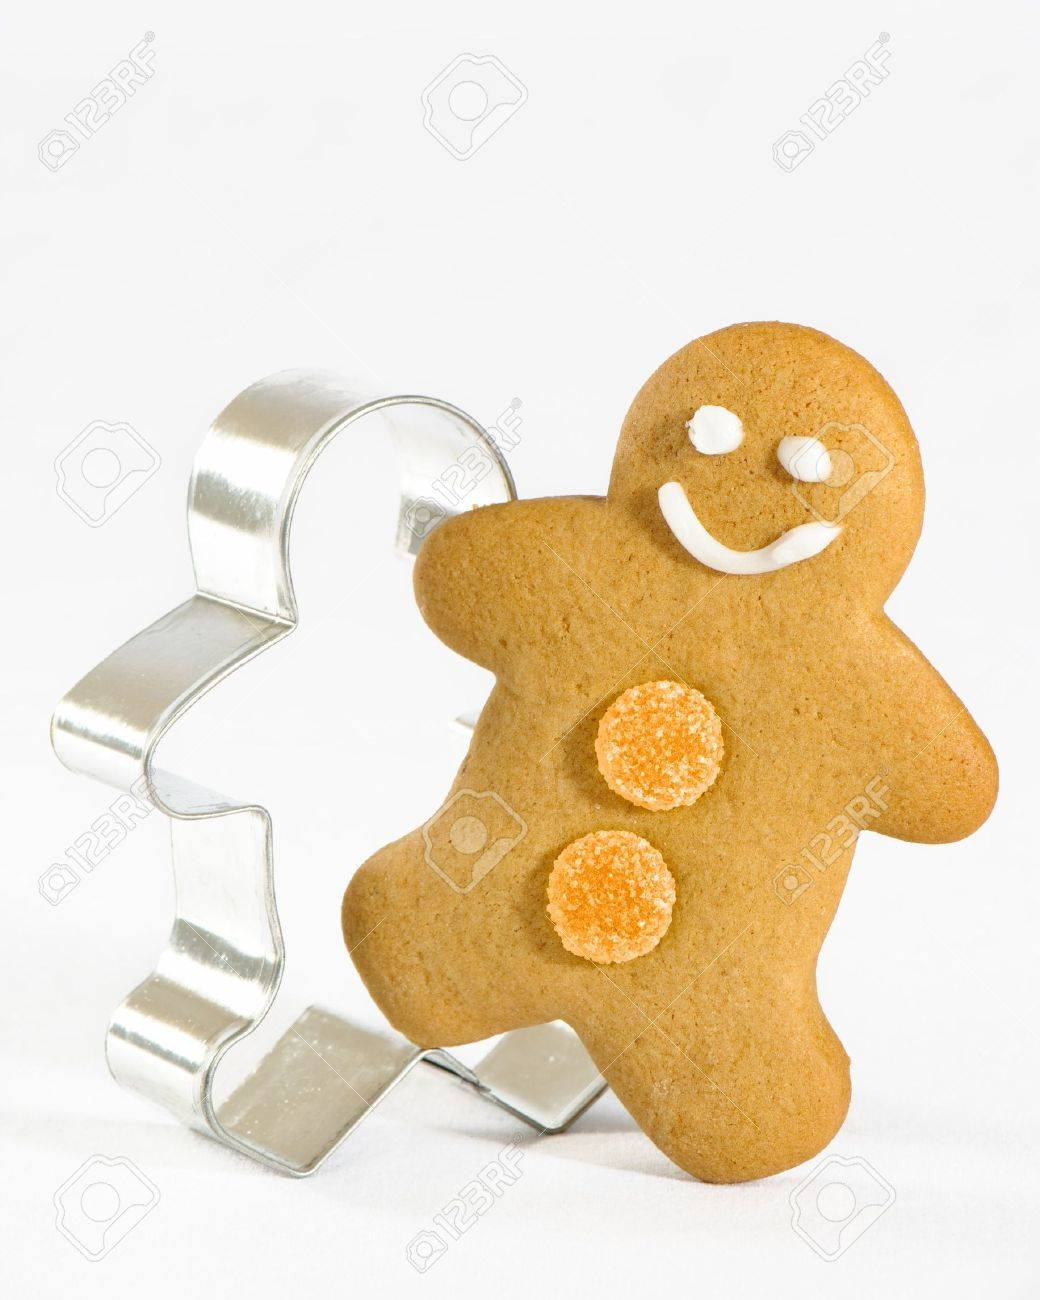 Gingerbread man stepping out of the mould Stock Photo - 4604207